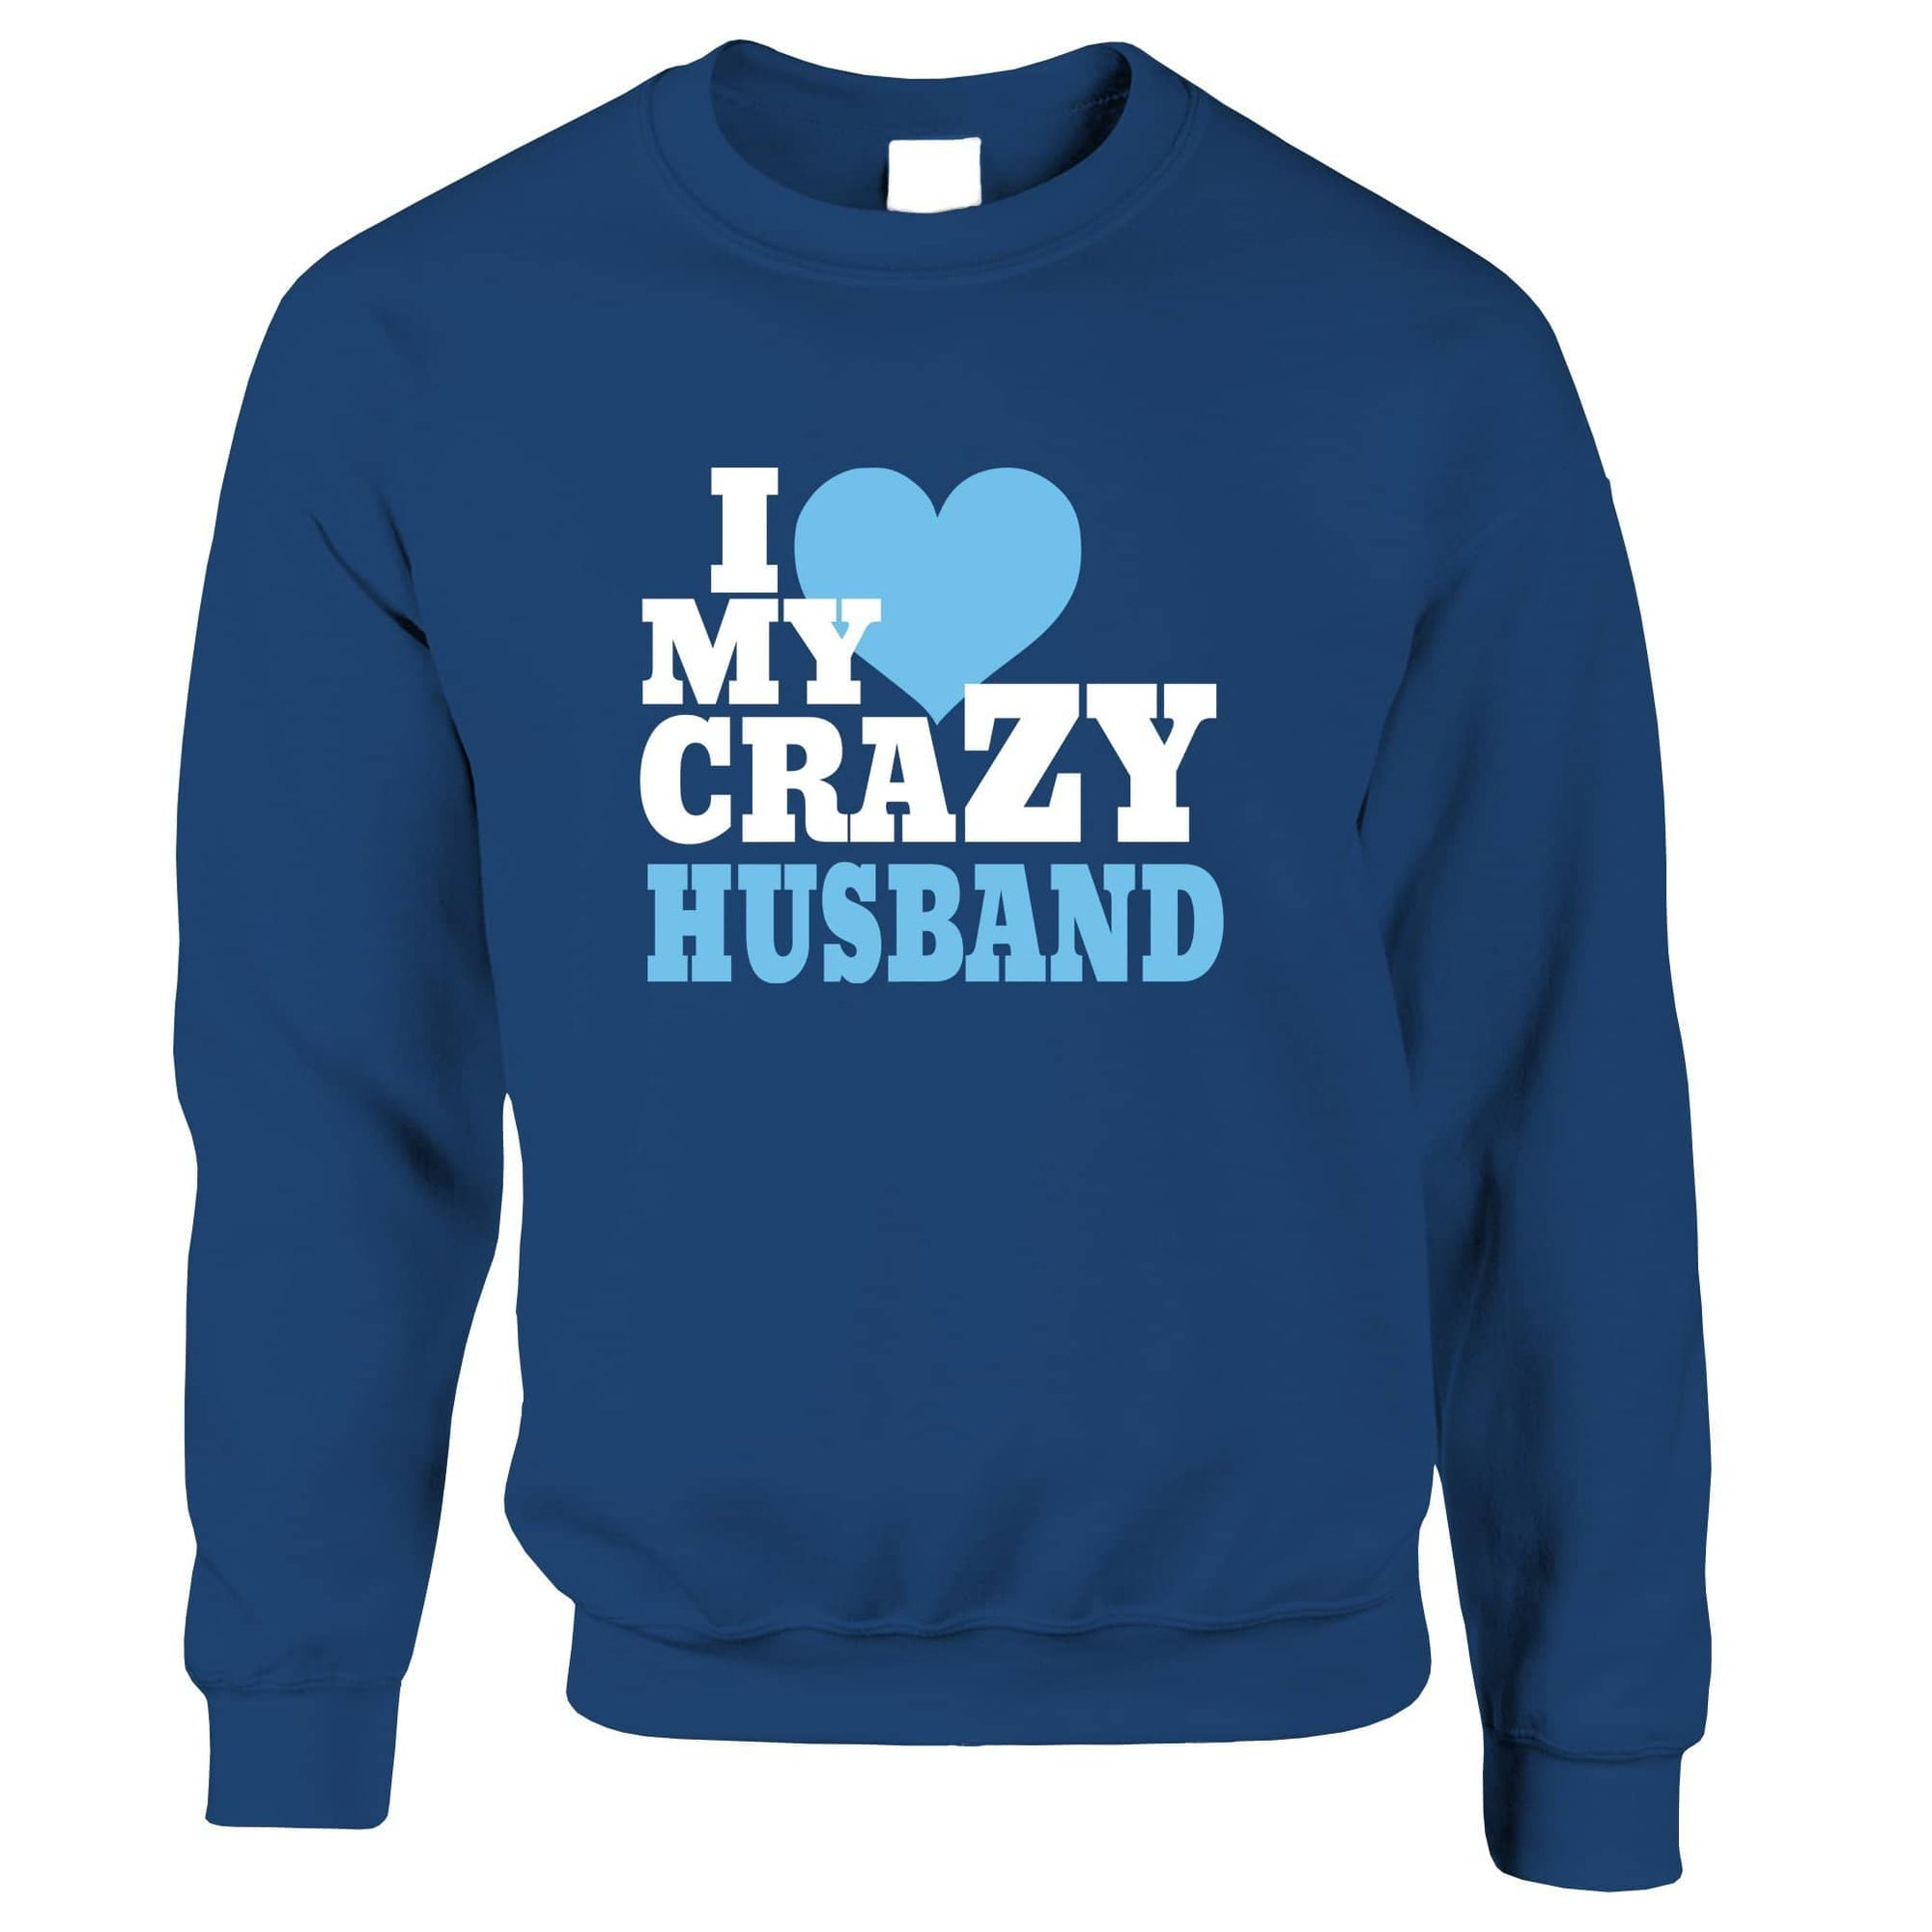 Fun Couples Jumper I Love My Crazy Husband Sweatshirt Sweater